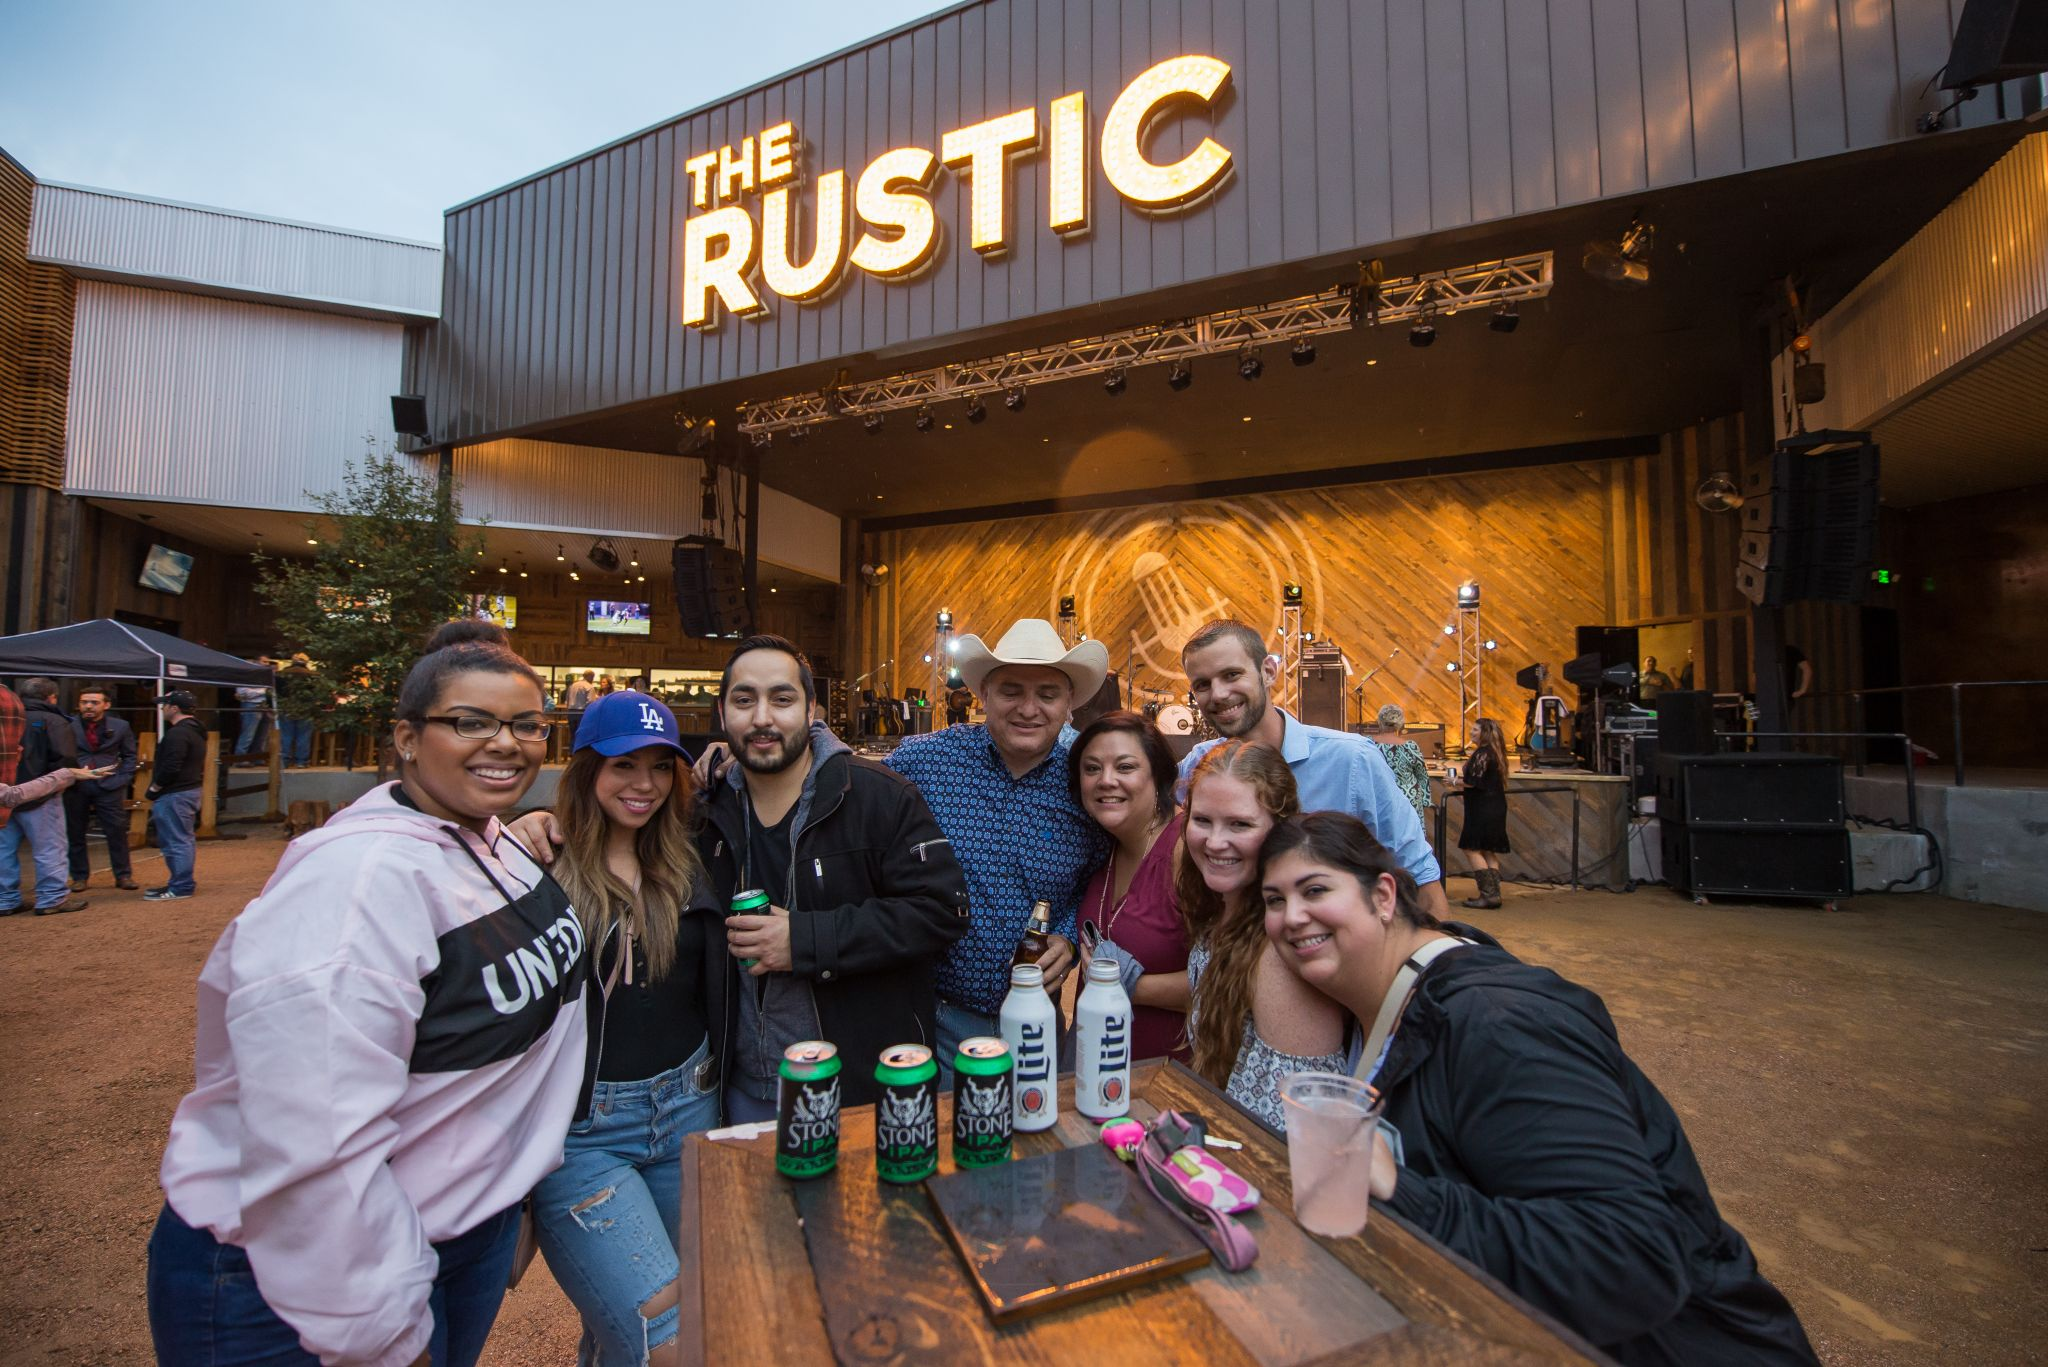 Fire Department Forces The Rustic To Close 1 Day After